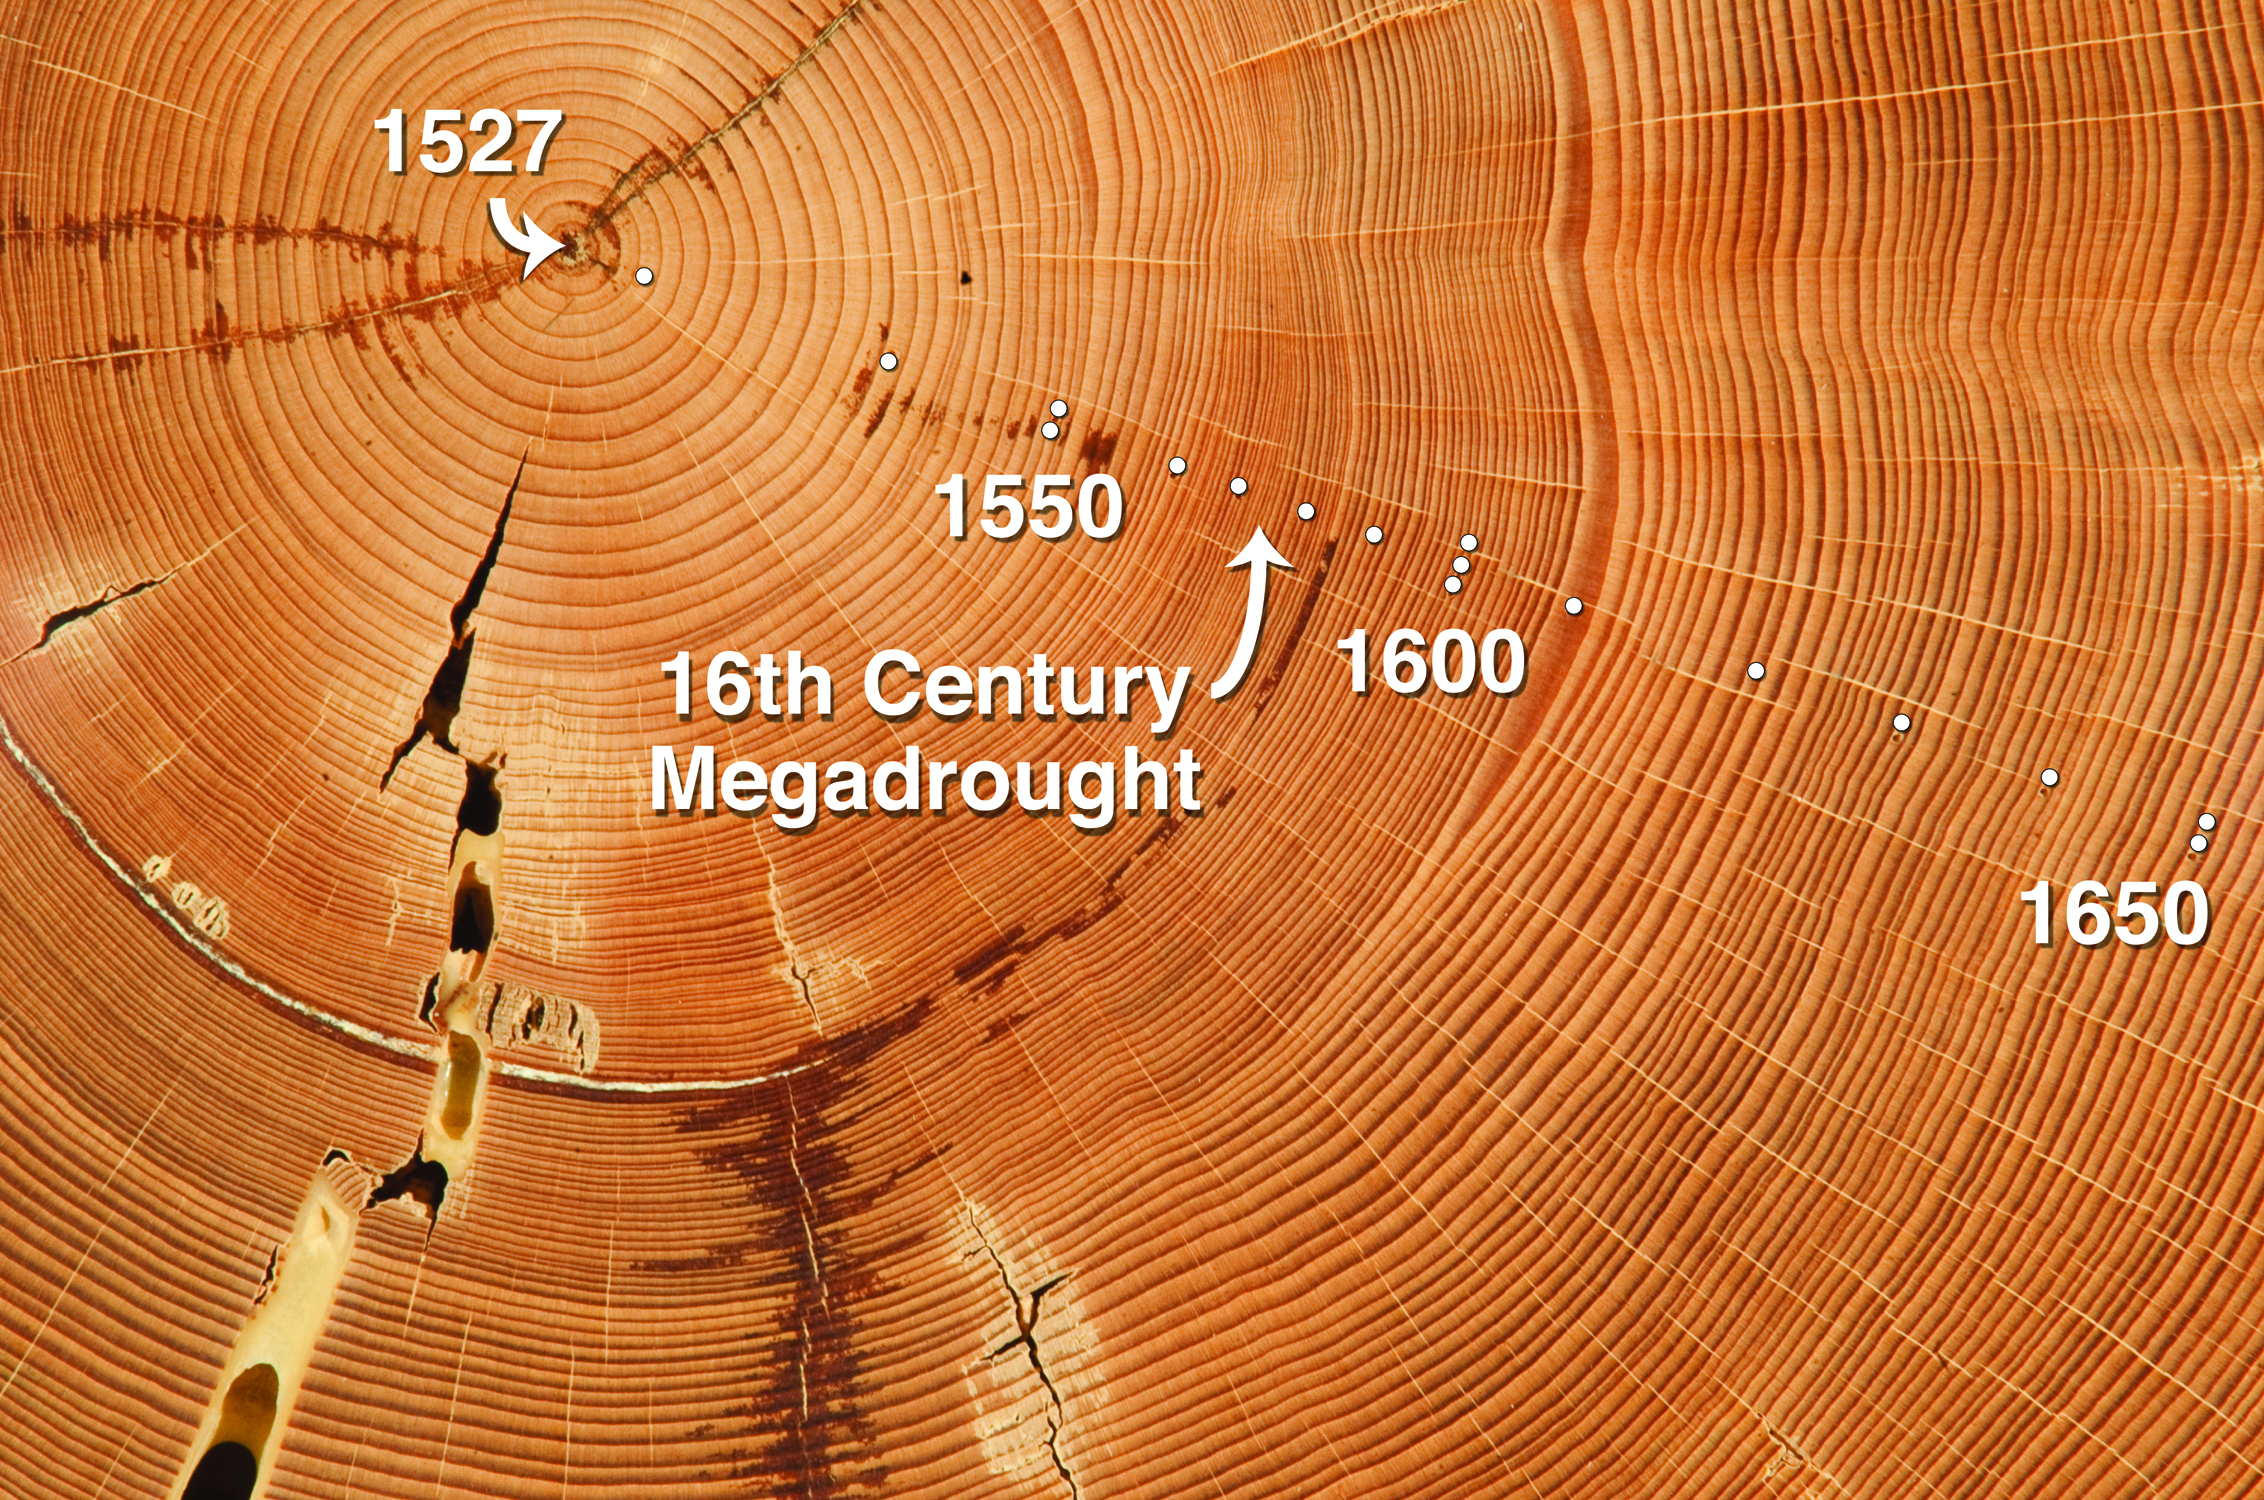 tree rings dating Dendrochronology is the formal term for tree-ring dating, the science that uses the growth rings of trees as a detailed record of climatic change in a region, as well as a way to approximate the date of construction for wooden objects of many types.